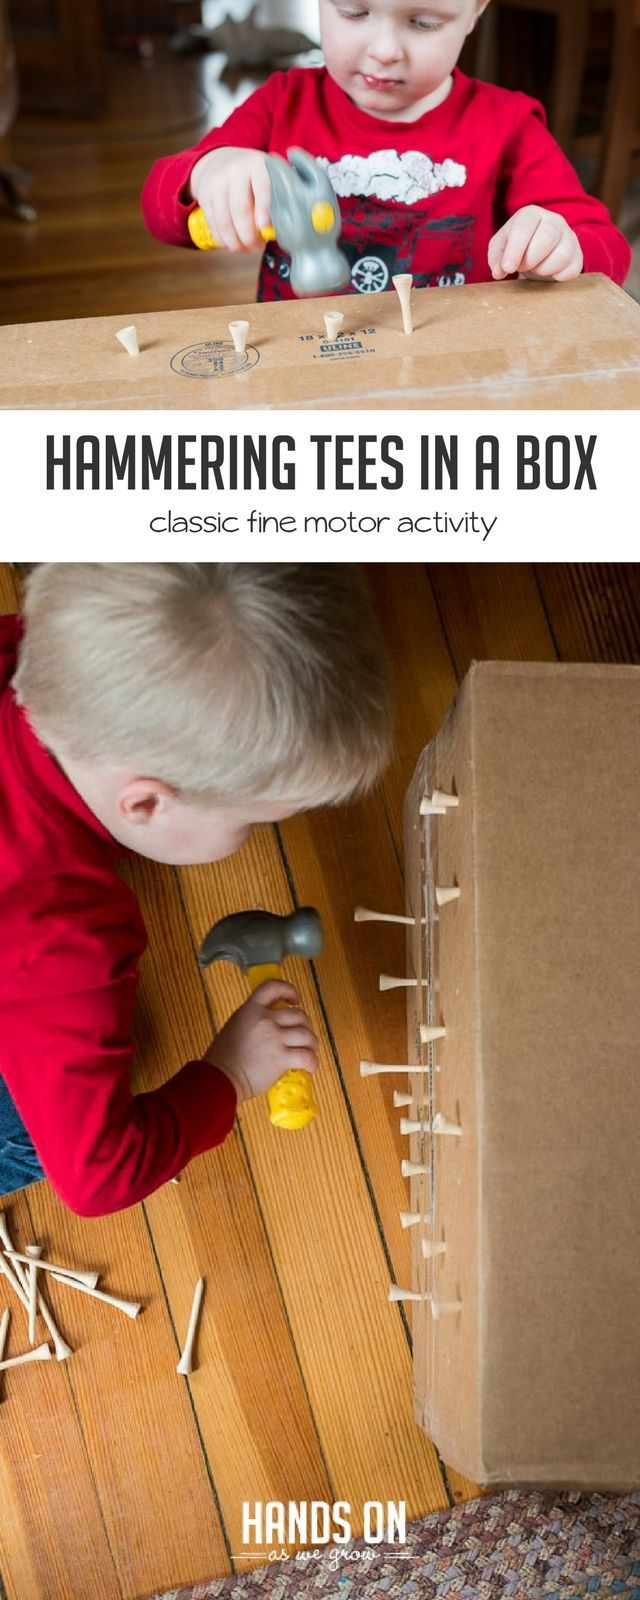 Pounding tees into a cardboard box - great idea for fine motor skills for toddlers! via @handsonaswegrow